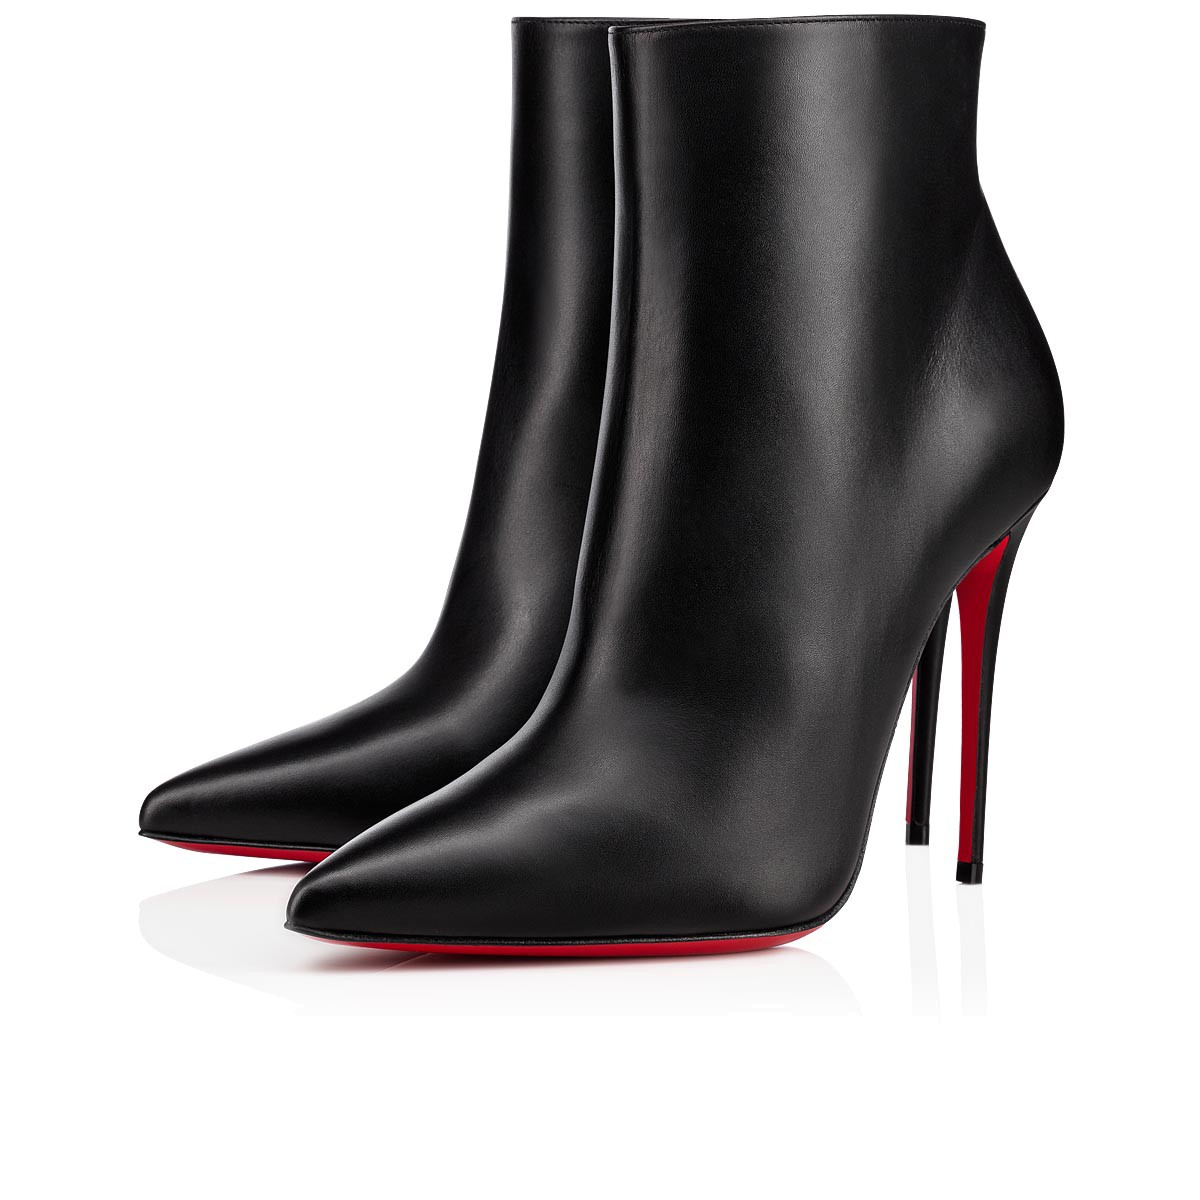 Souliers Femme - So Kate Booty - Christian Louboutin